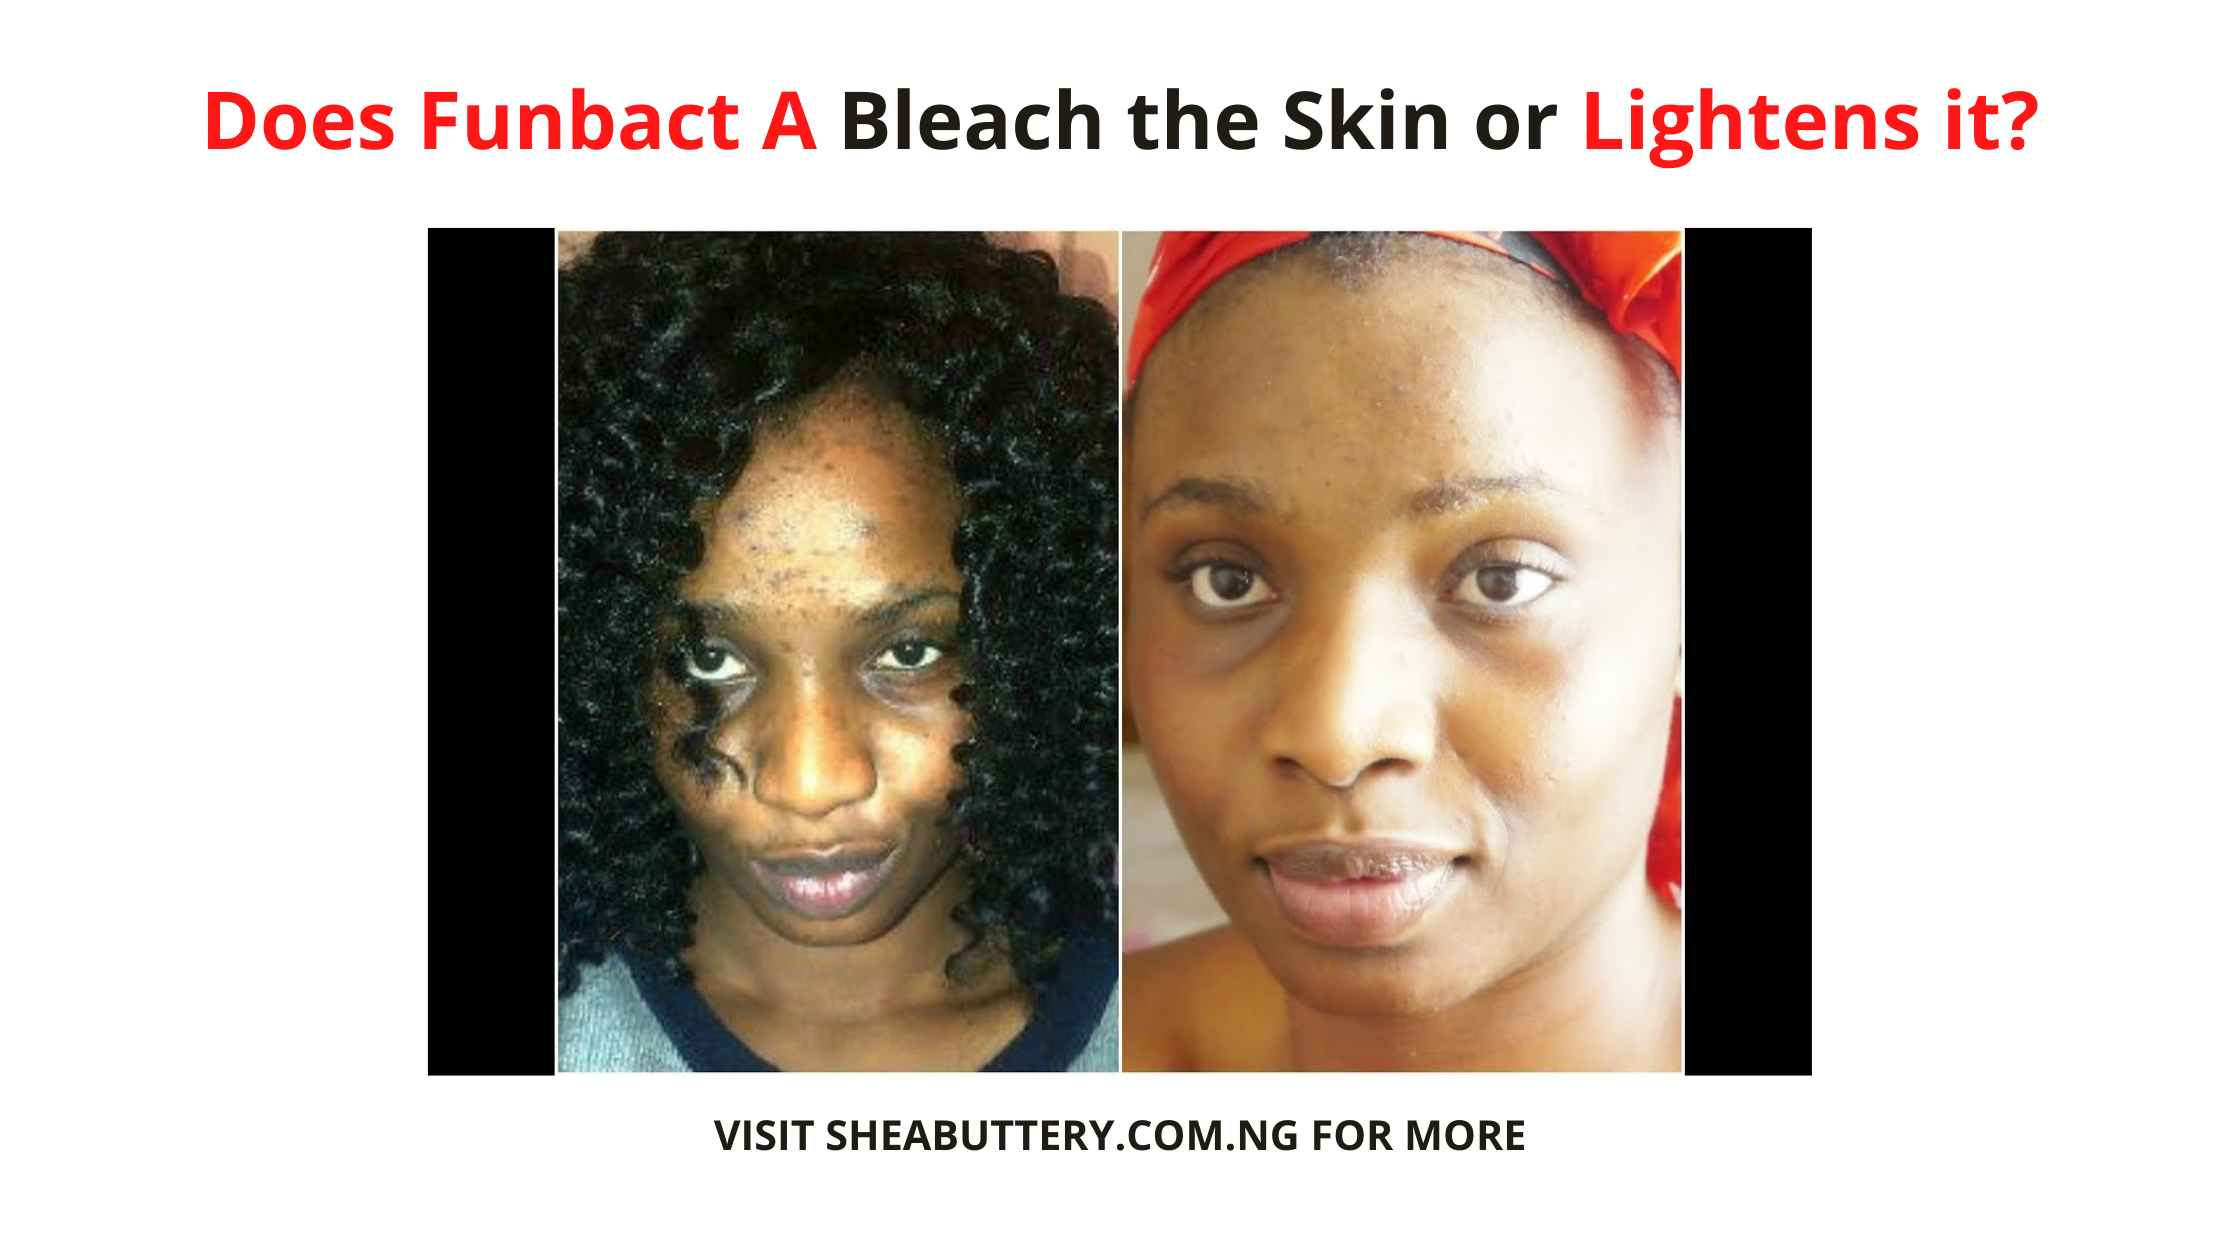 Does Funbact A Bleach the Skin